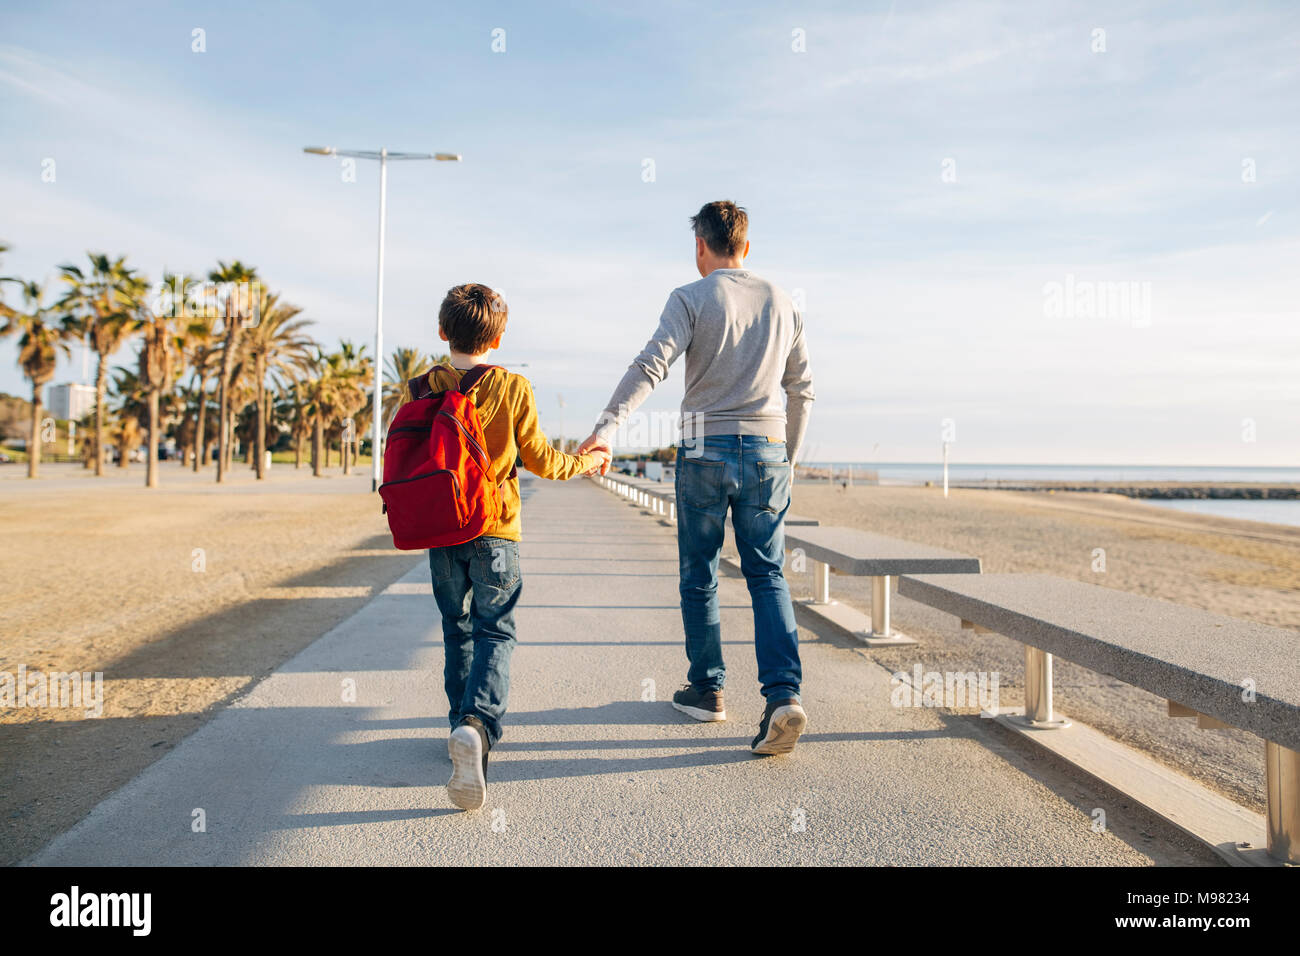 Father and son walking on beach promenade - Stock Image